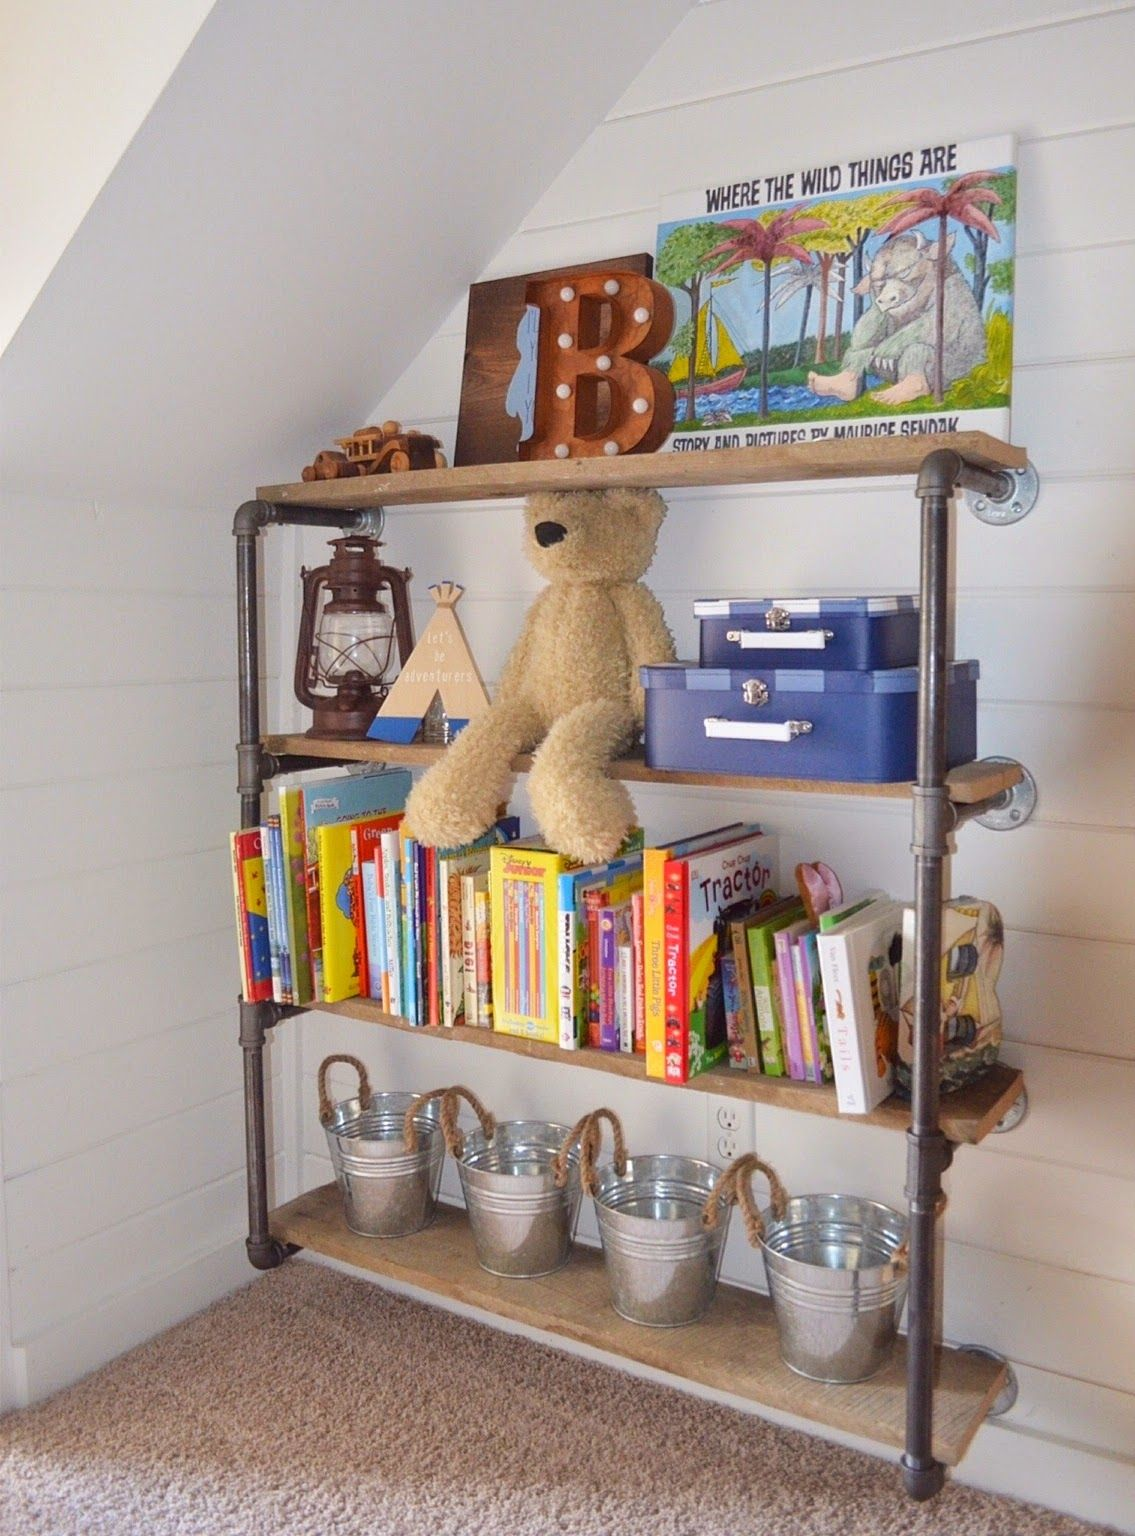 DIY Rustic Industrial Bookshelf In Our Latest Nursery Reveal